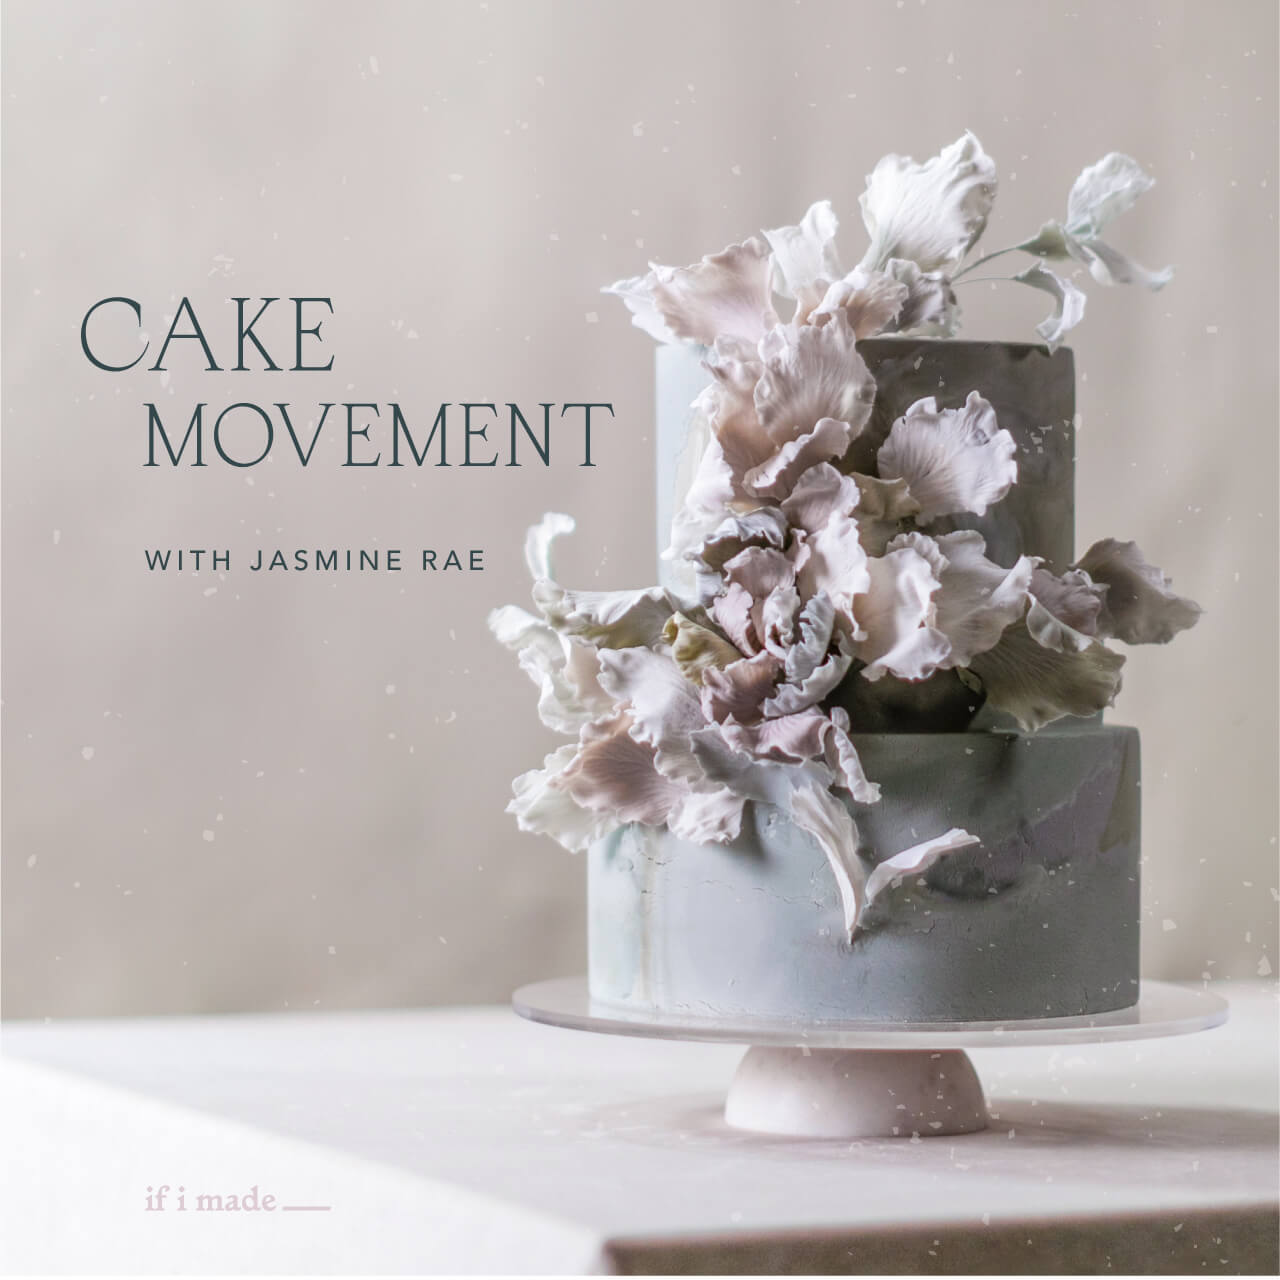 Cake Movement